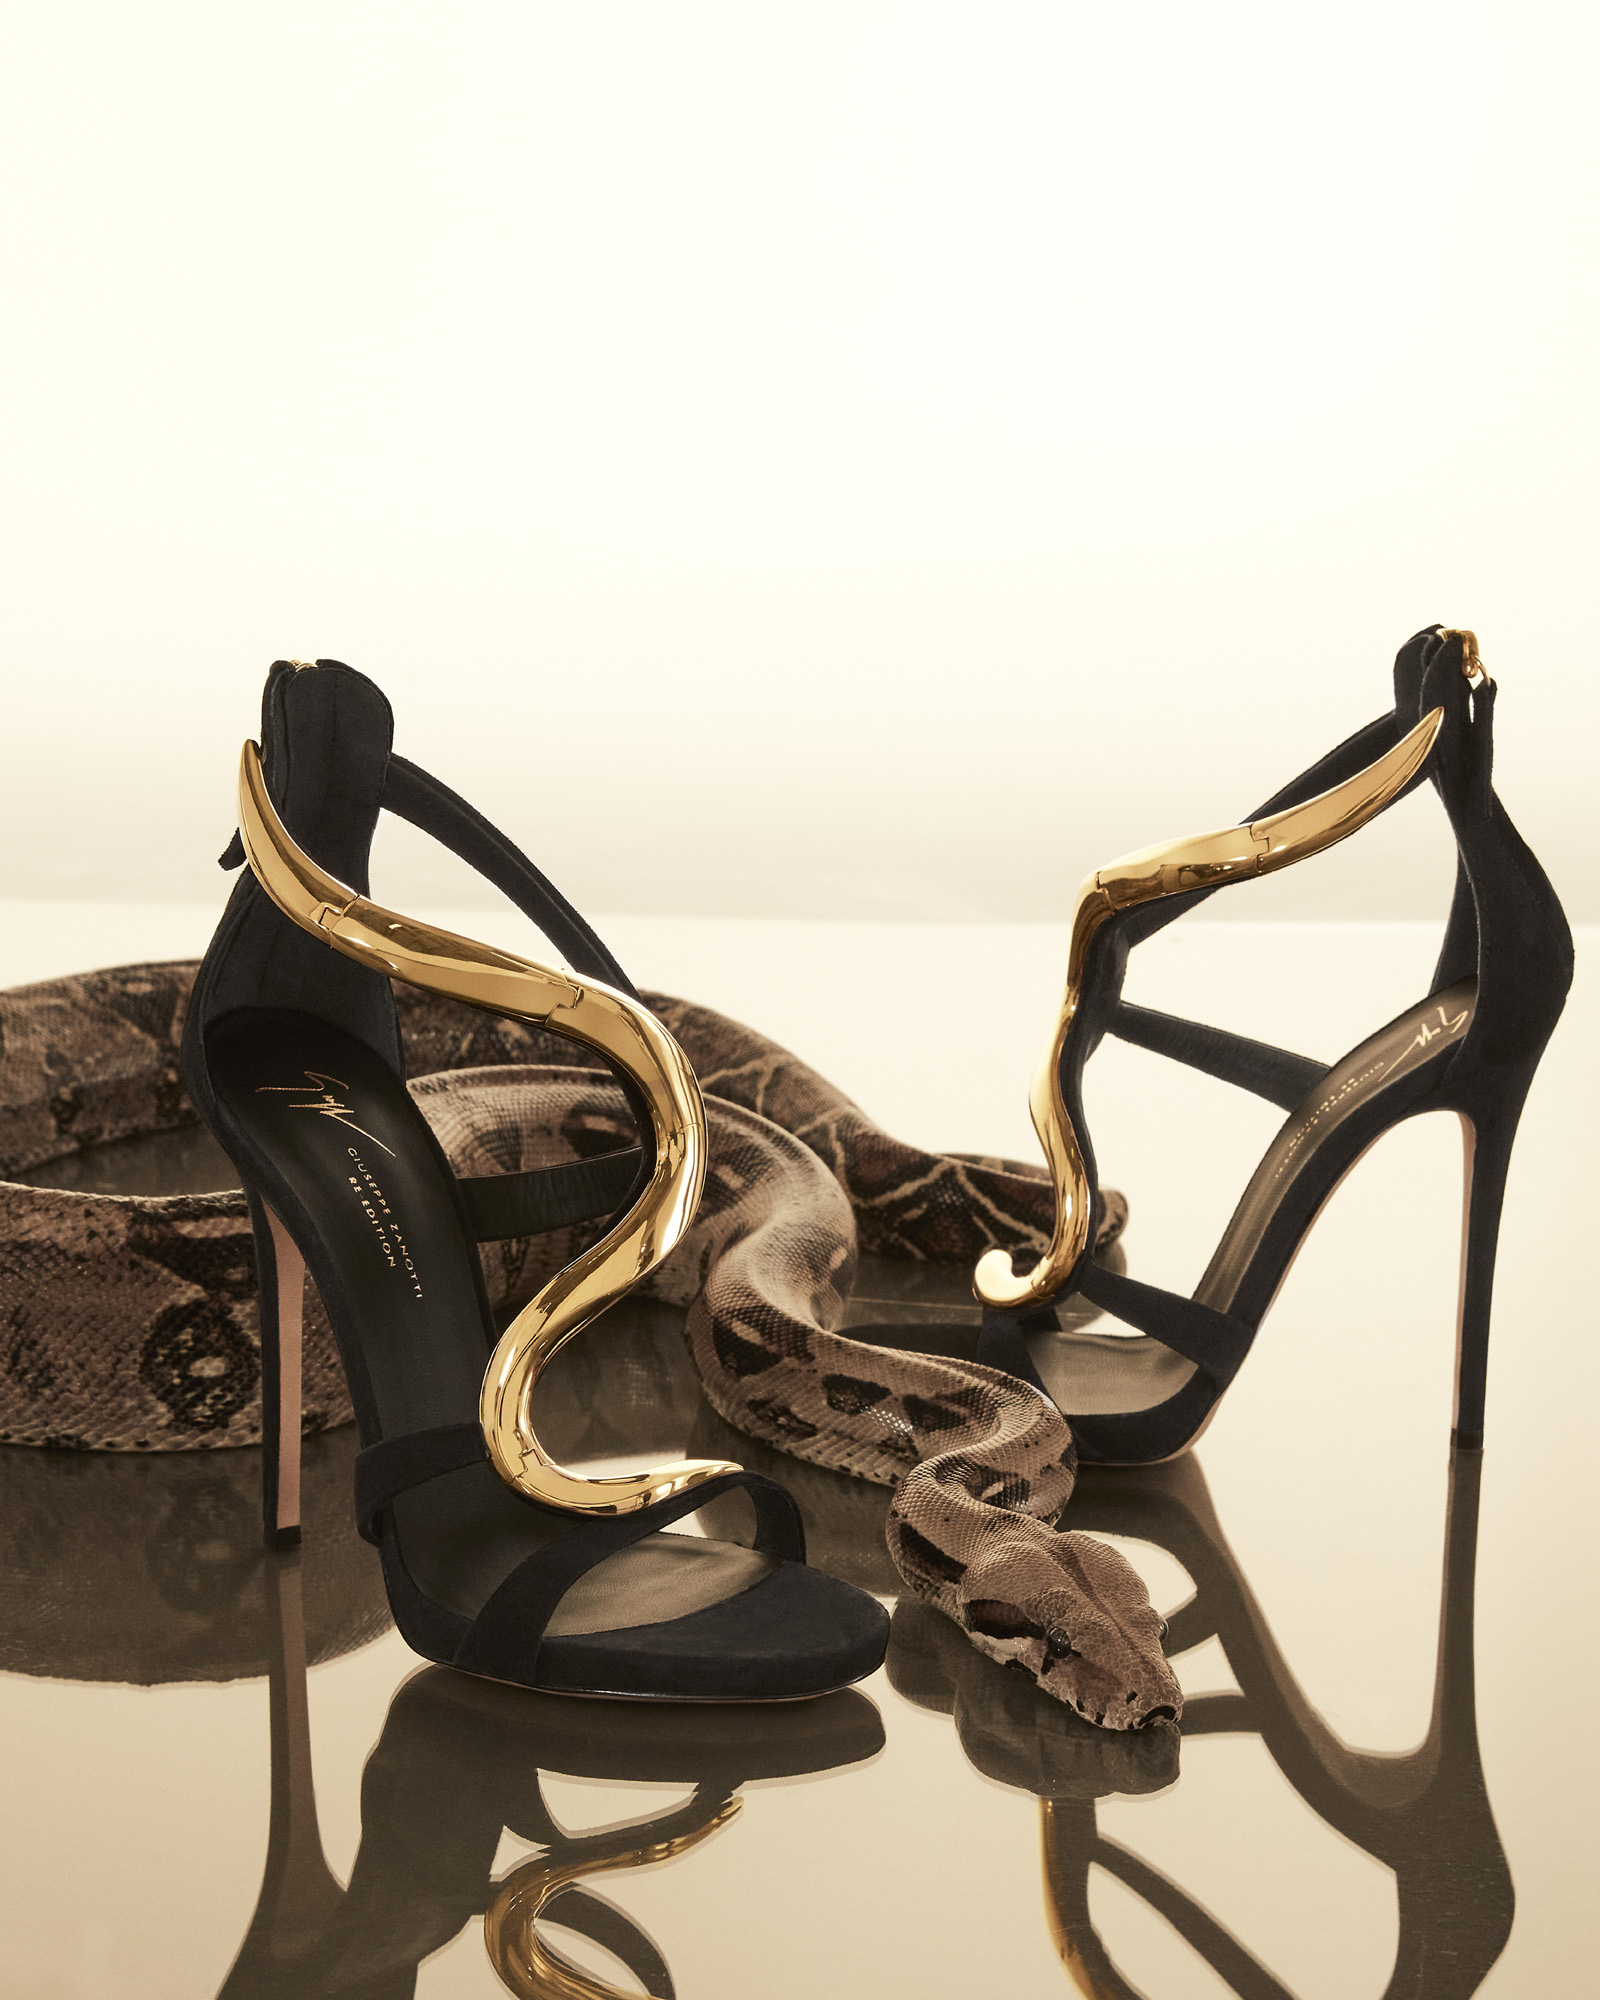 The re-edition of Giuseppe Zanotti's Venus stiletto